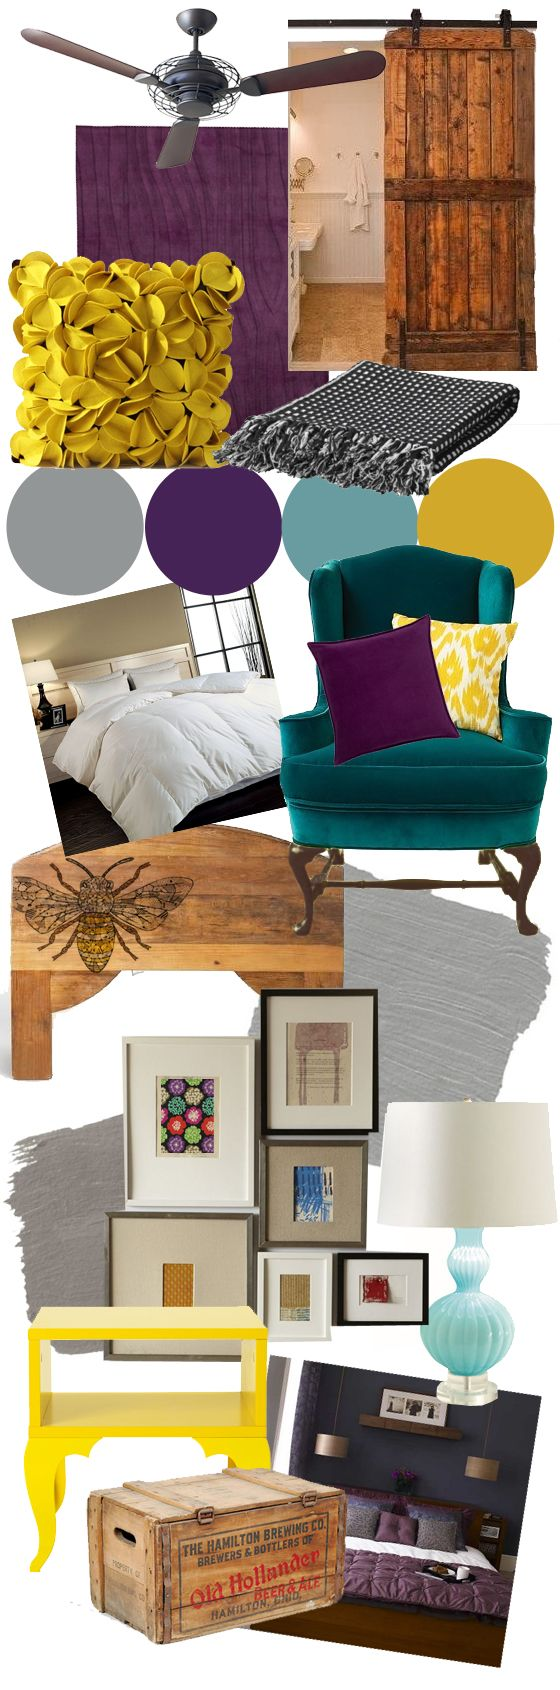 similar colors- mood board... But instead of purple, maybe navy blue. Like the bottom bedroom picture.